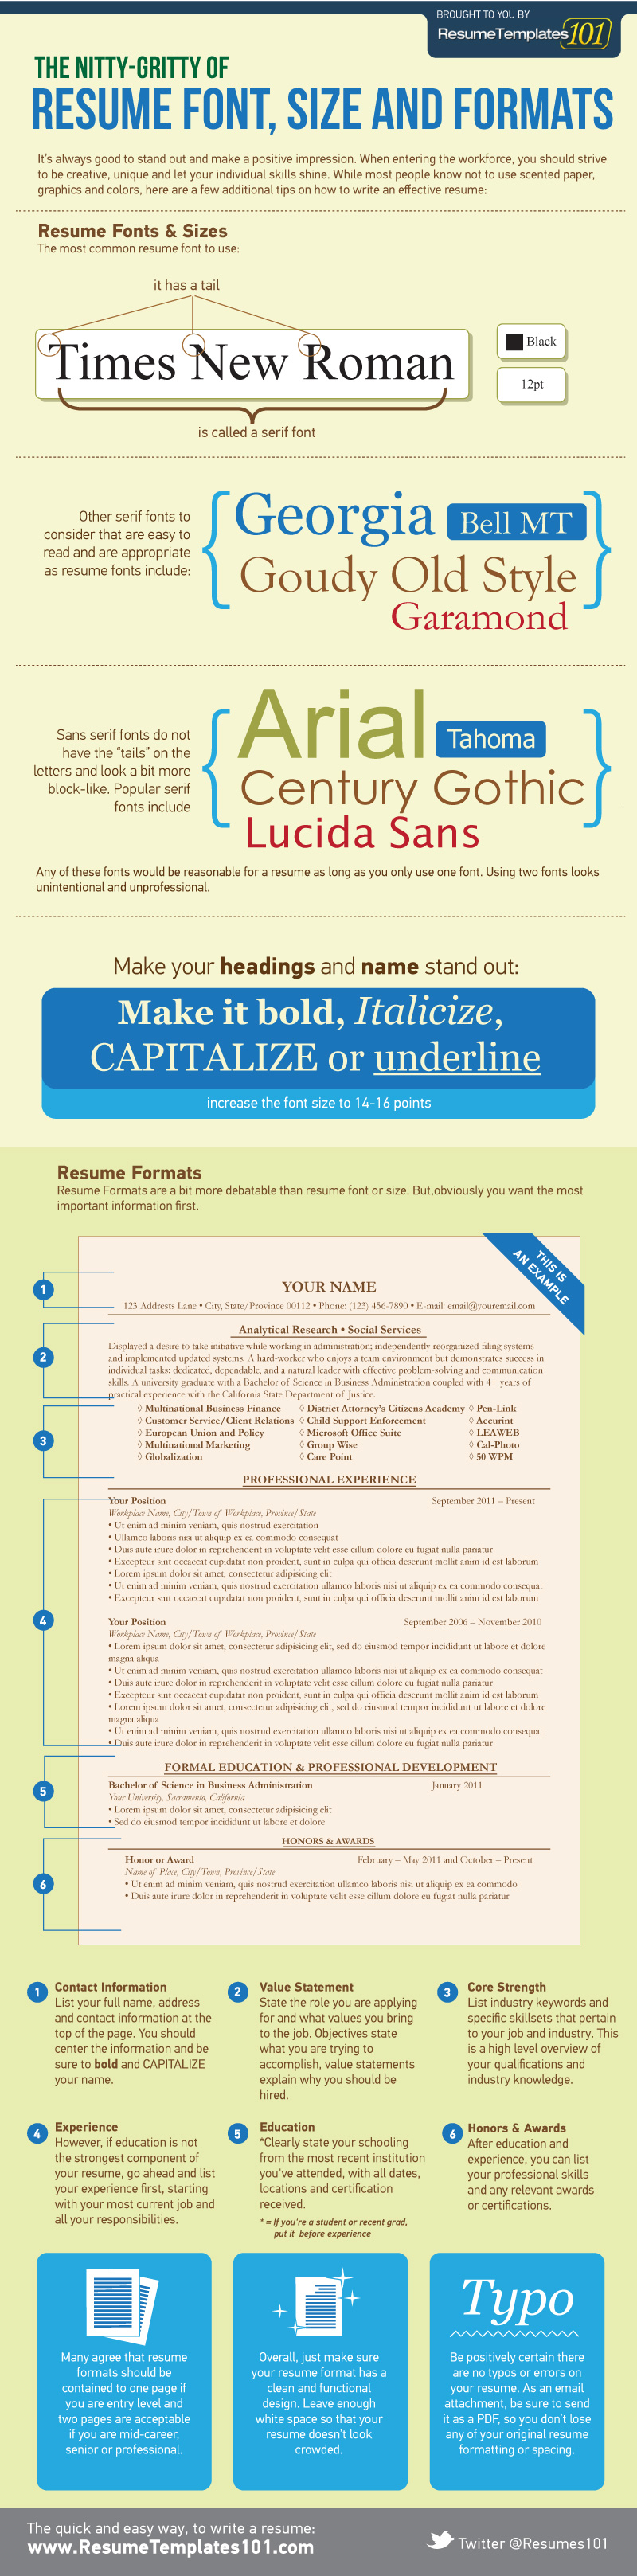 Make Your Resume Look Better The Nitty Gritty Of Resume Font